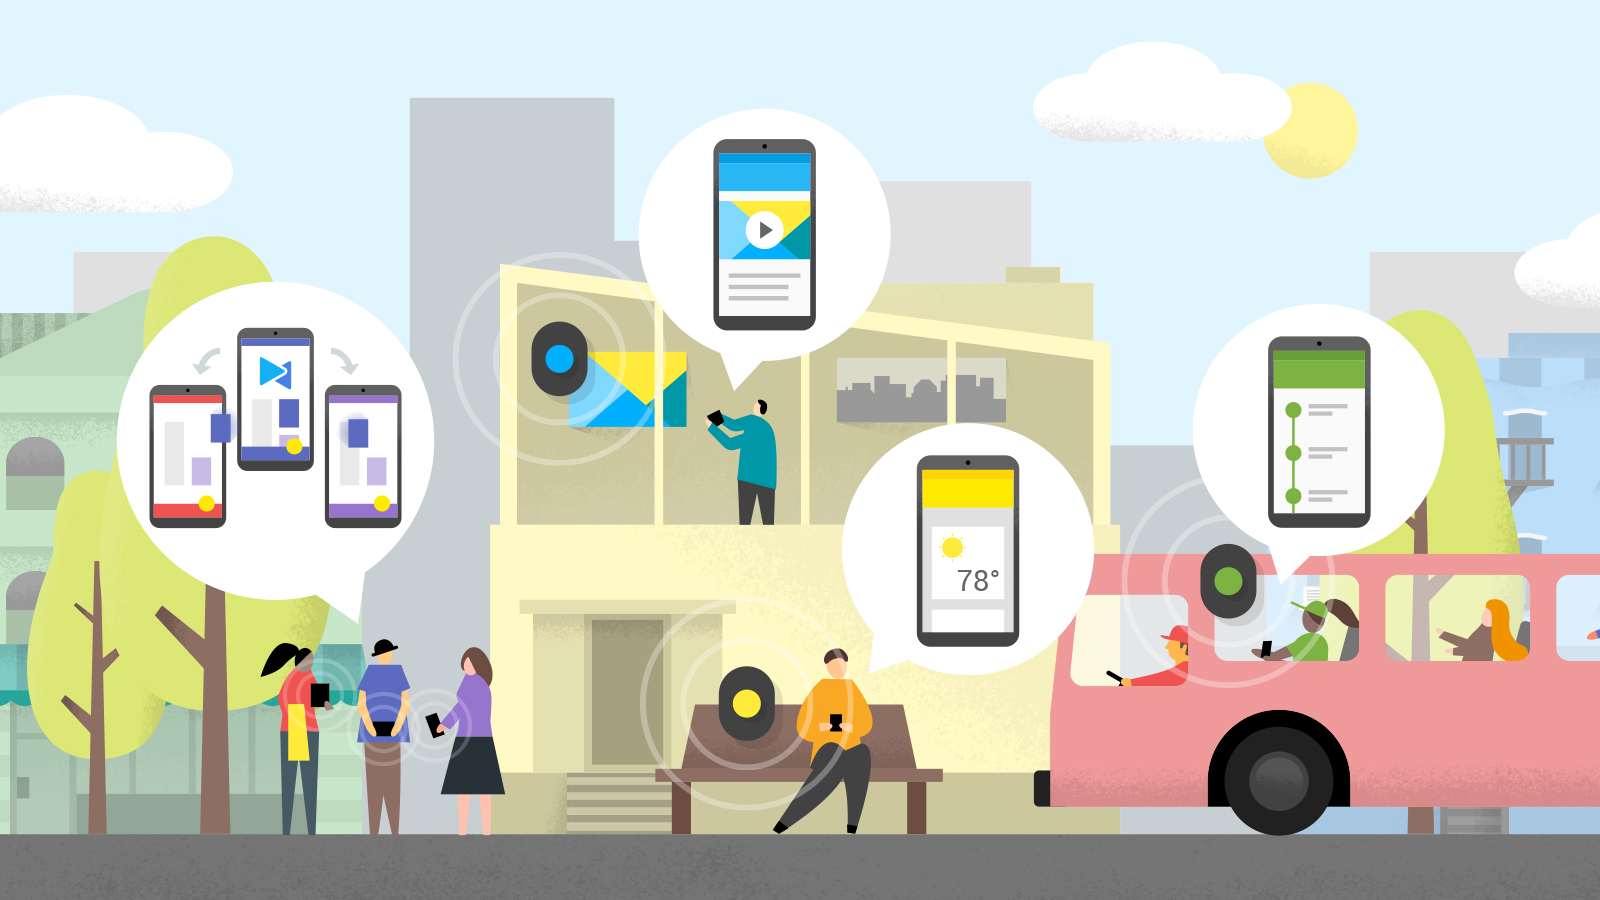 google-nearby-balizas-futuro-conexiones-dispositivos-conectividad-streaming-digitaldepot